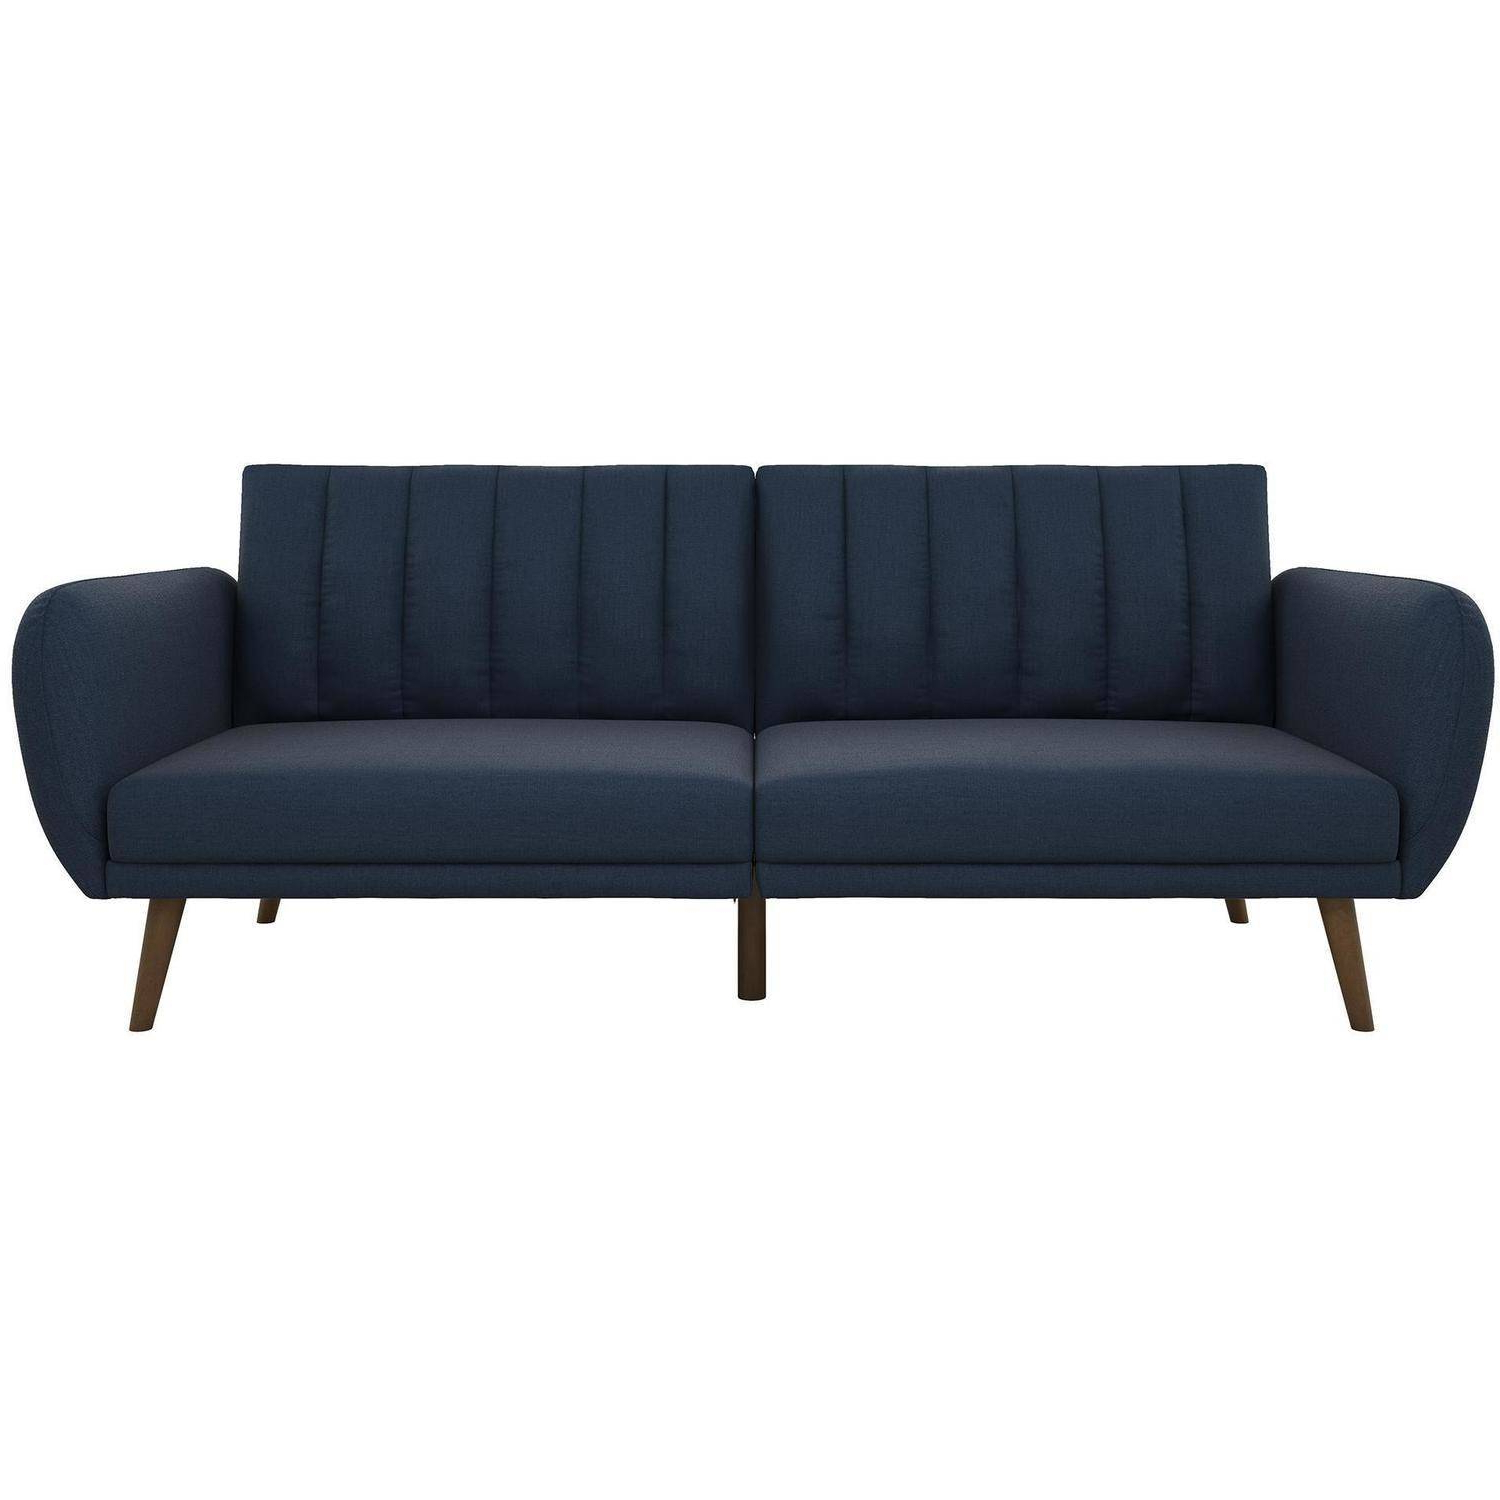 Novogratz Brittany Linen Futon Couch, Multiple Colors Within Trendy Brittany Sectional Futon Sofas (View 5 of 20)